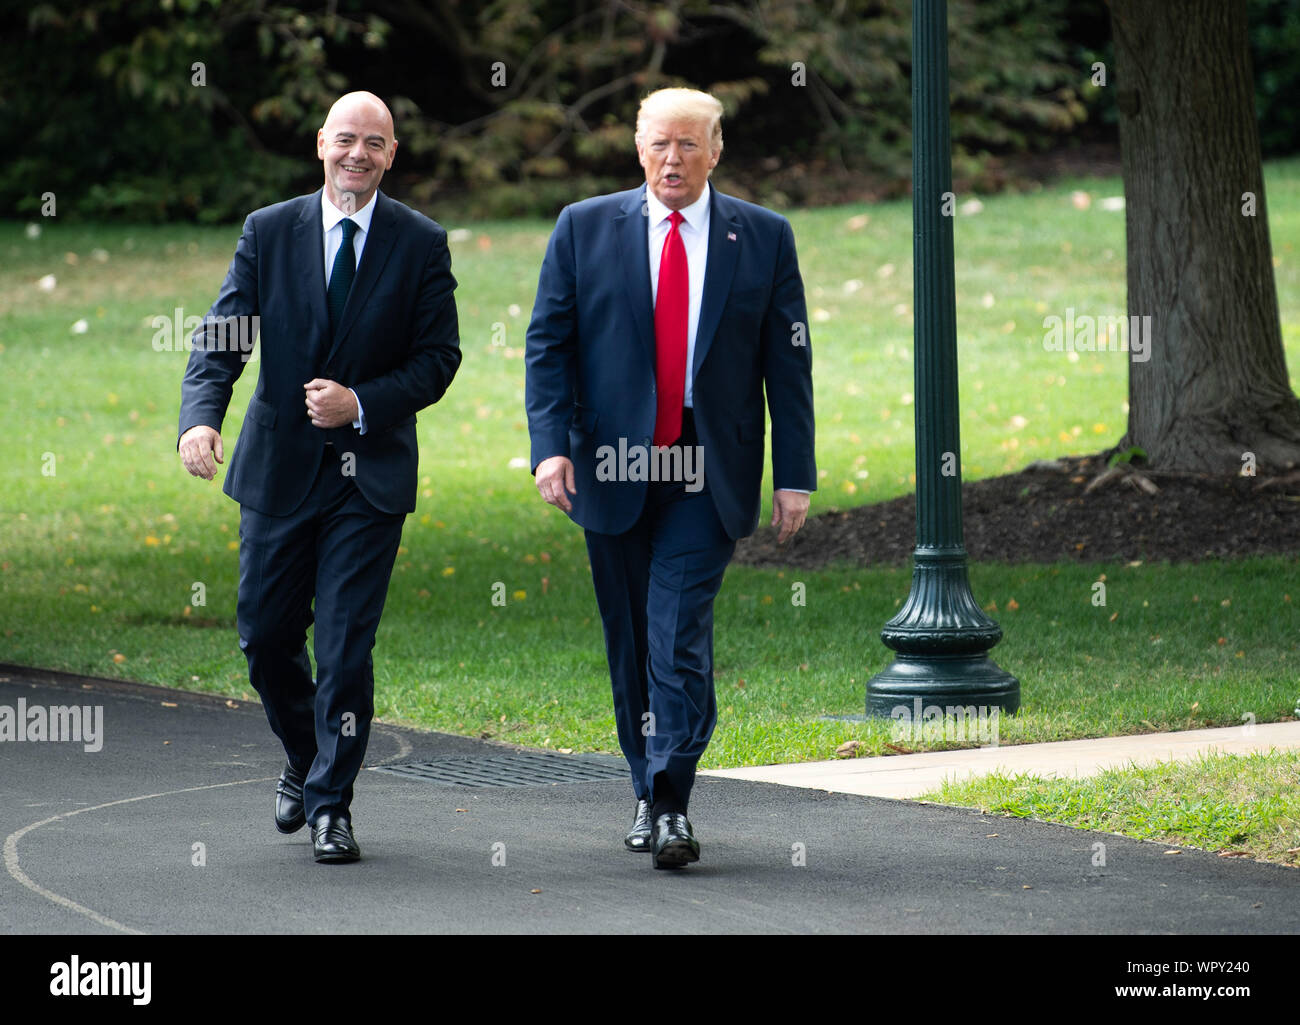 Washington DC, USA. 9th Sep 2019. President Donald Trump and FIFA President Gianni Infantino walk together as Trump departs the White House for a rally in North Carolina, in Washington, DC on Monday, September 9, 2019. Photo by Kevin Dietsch/UPI Credit: UPI/Alamy Live News Stock Photo